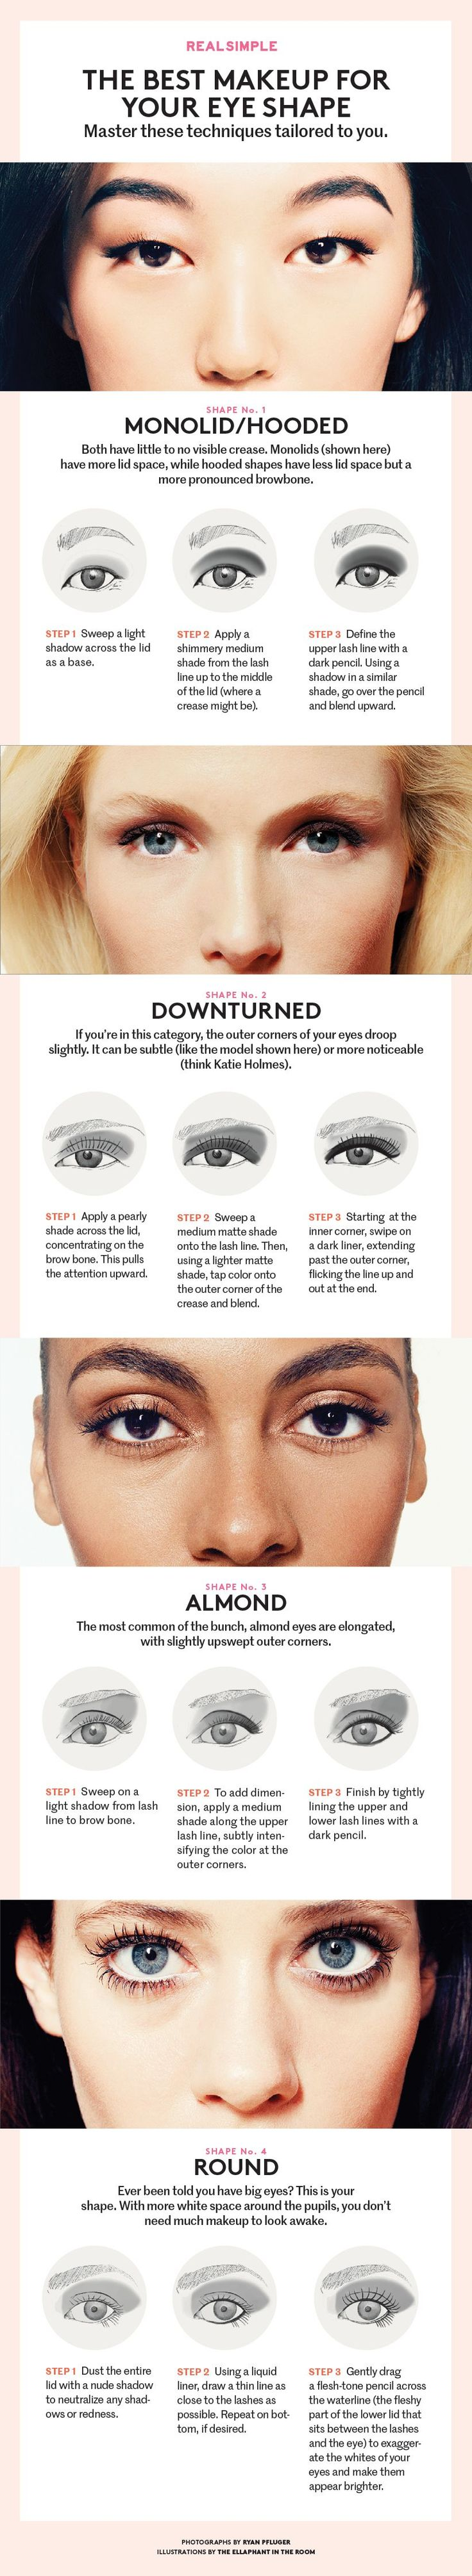 Nailing your look every time comes down to one thing: knowing how to play up your exact eye shape. Here, how to identify yours, what to use, and exactly where everything should go.